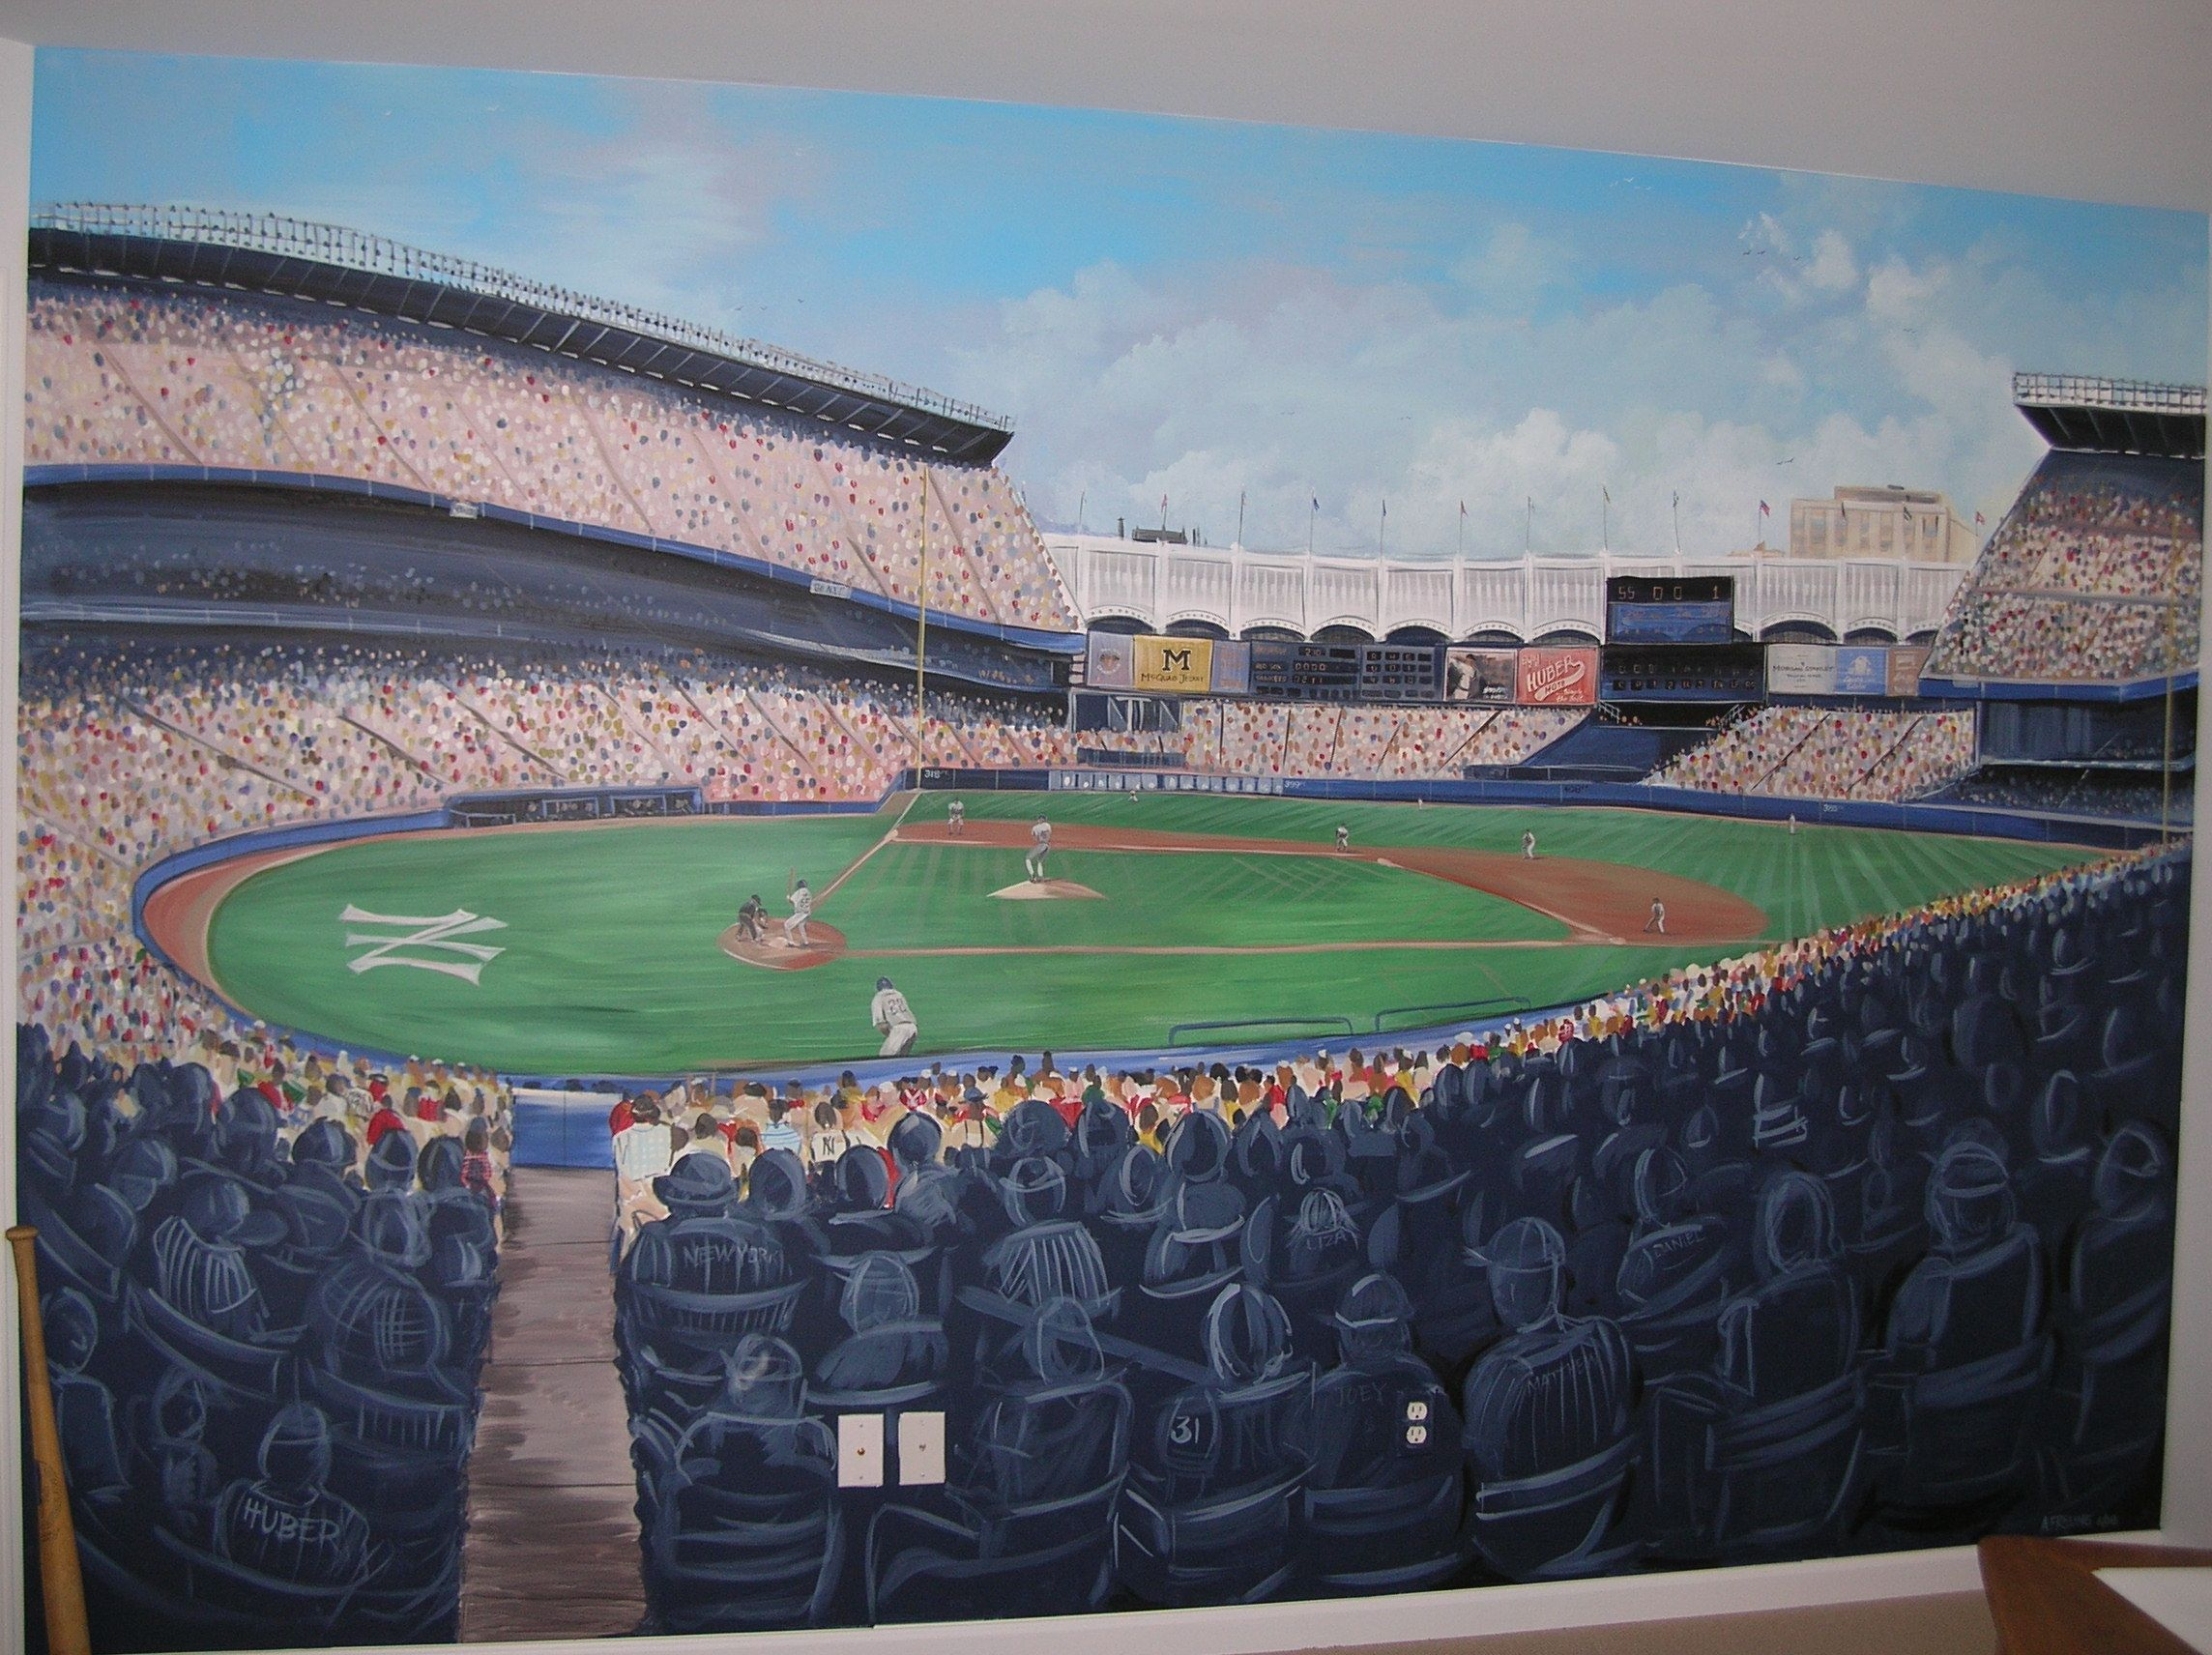 Marvelous Painted Yankee Stadium Mural. Complete With Fans, Baseball Field And  Customized Billboards. The Part 23